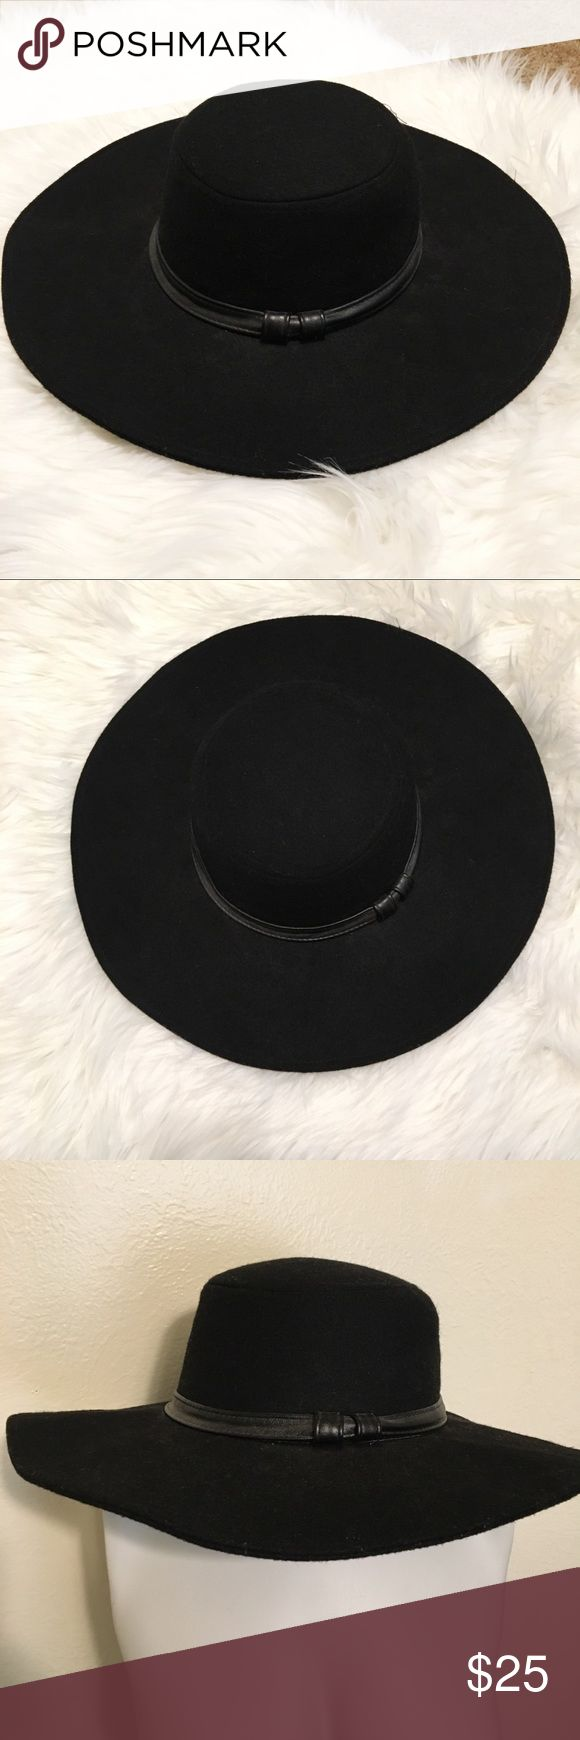 "Kendall & Kylie Wide Brim Hat Wide brim slightly floppy hat. Perfect Fall/Spring accessory! Features a leather band with 2 knots. EUC. See Tag for fabric content. Brim measures 4"", hat is 4"" deep with a 21.3"" circumference for your head. Kendall & Kylie Accessories Hats"